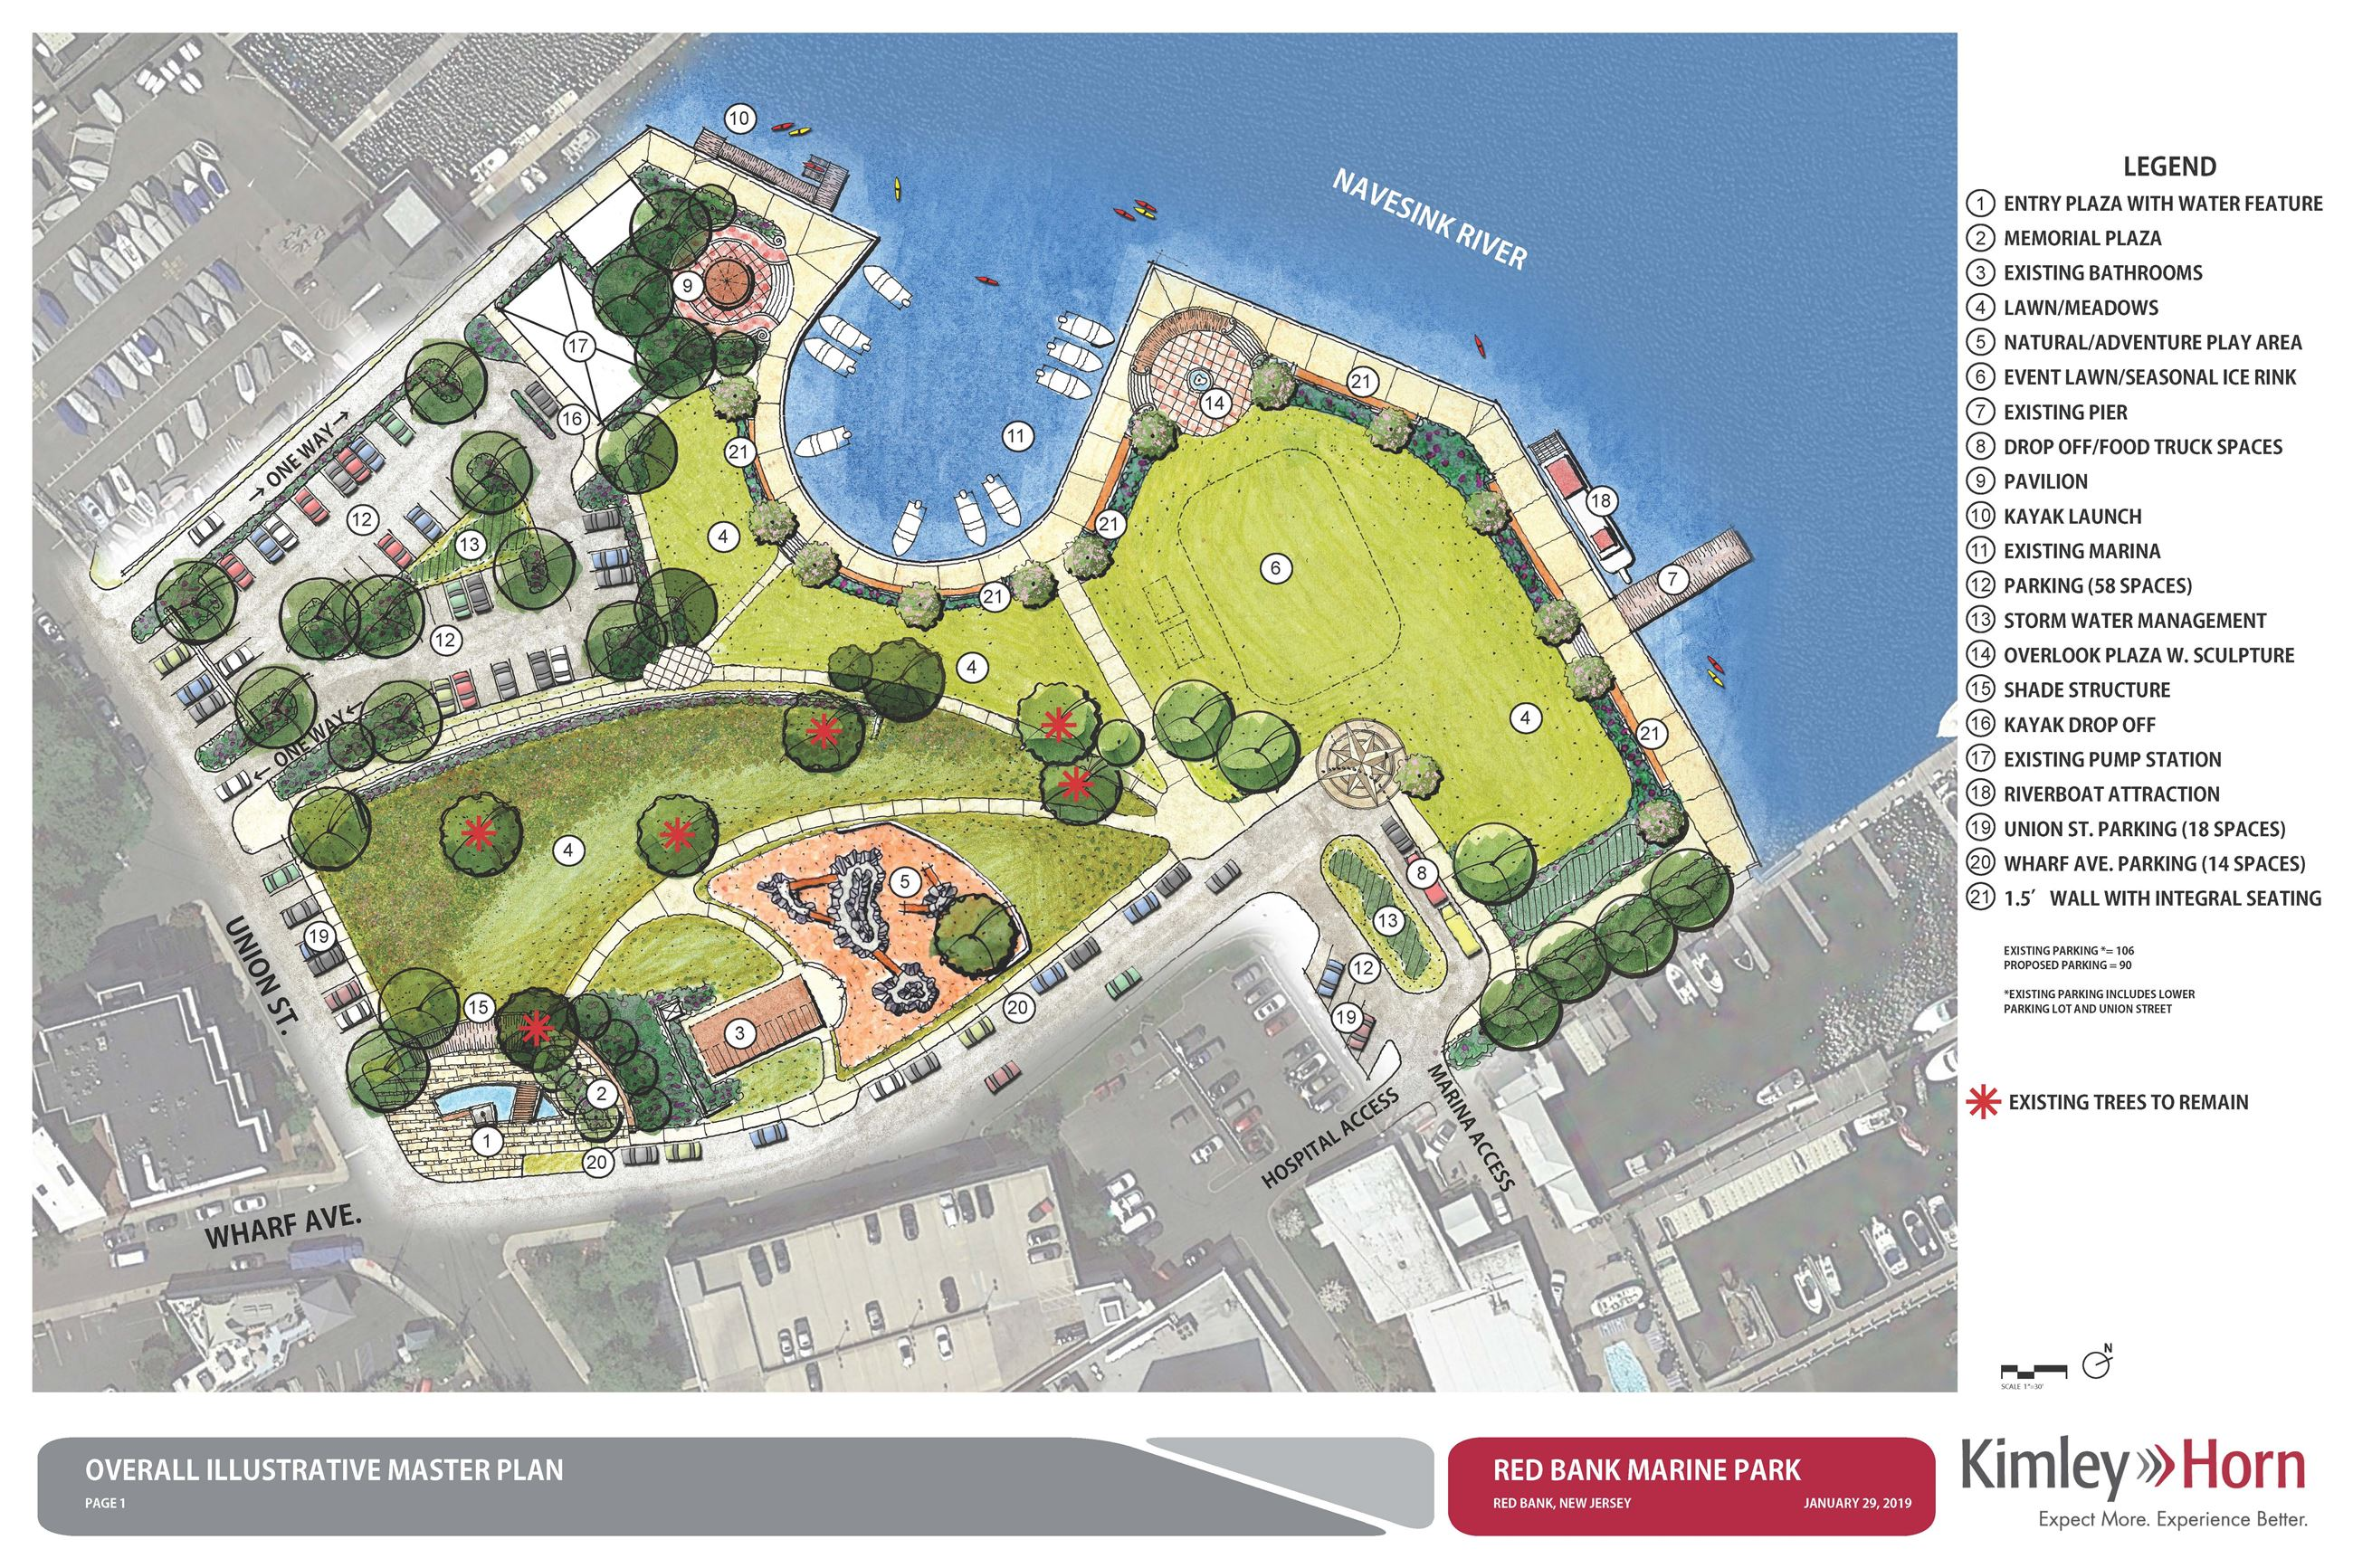 Marine Park Final Concept Master Plan 2019 Opens in new window